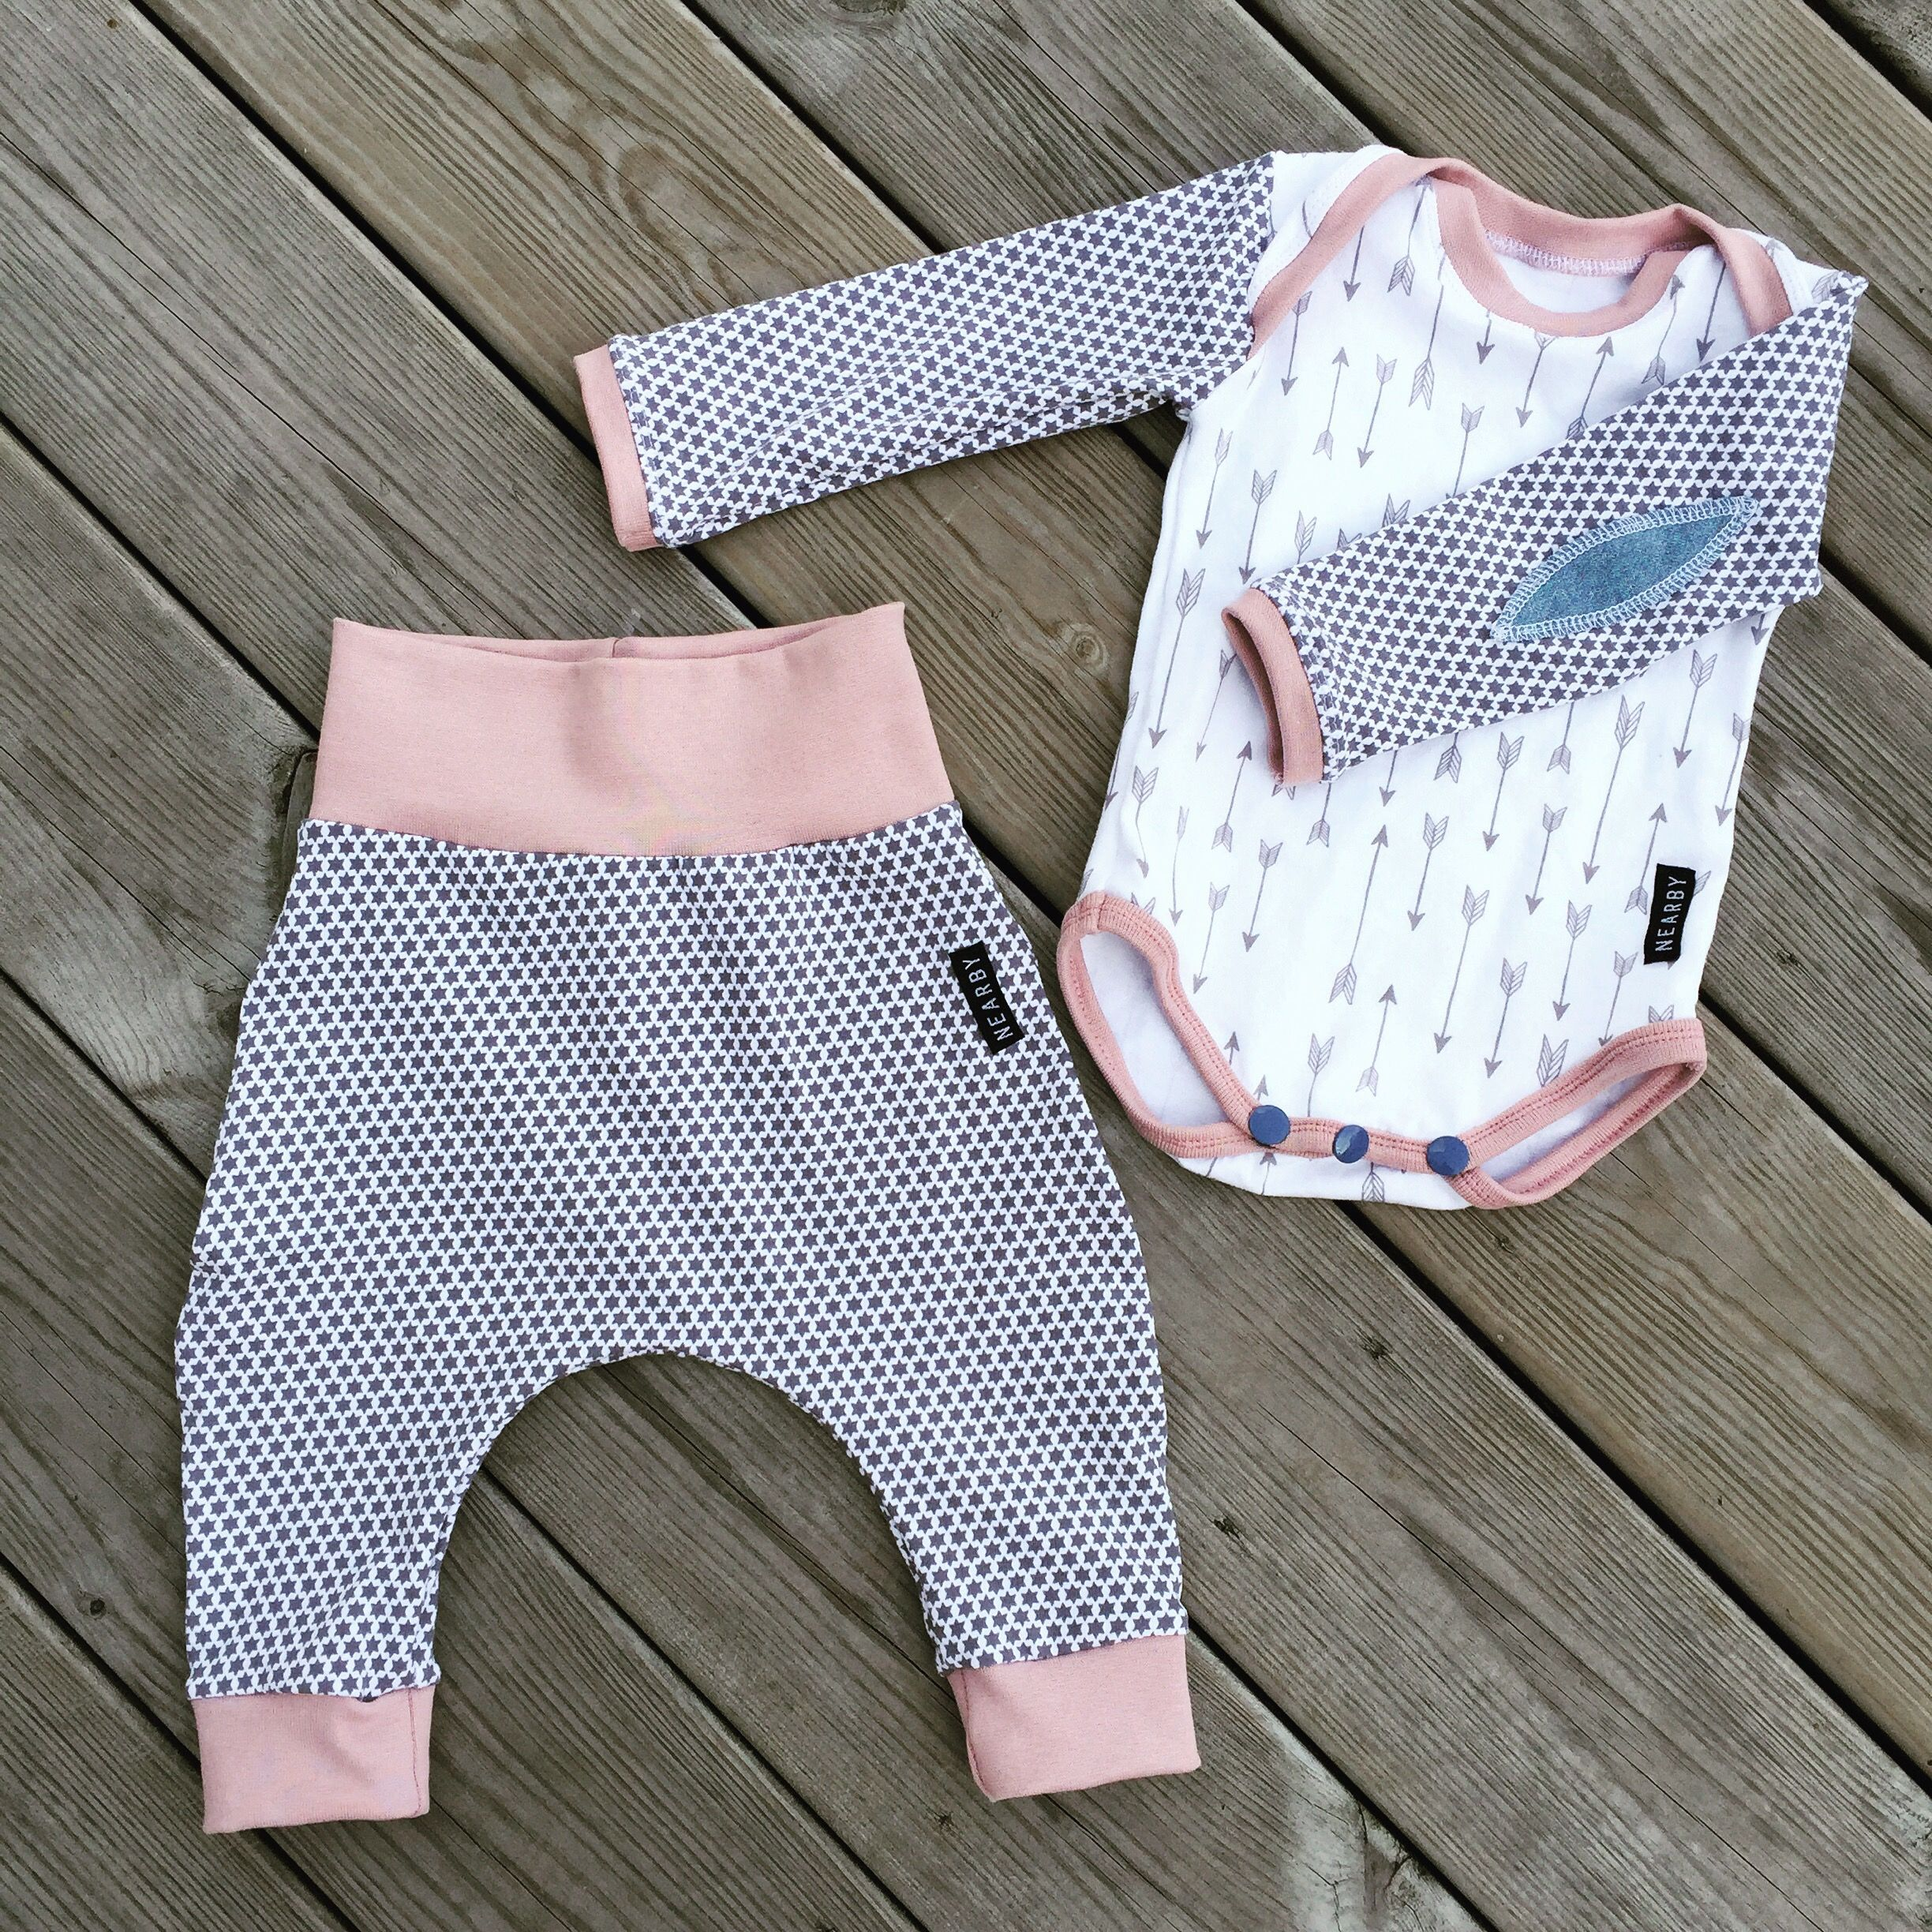 0c6b32c56 Love this free pattern! This baby onepiece is so fun to sew. You ...